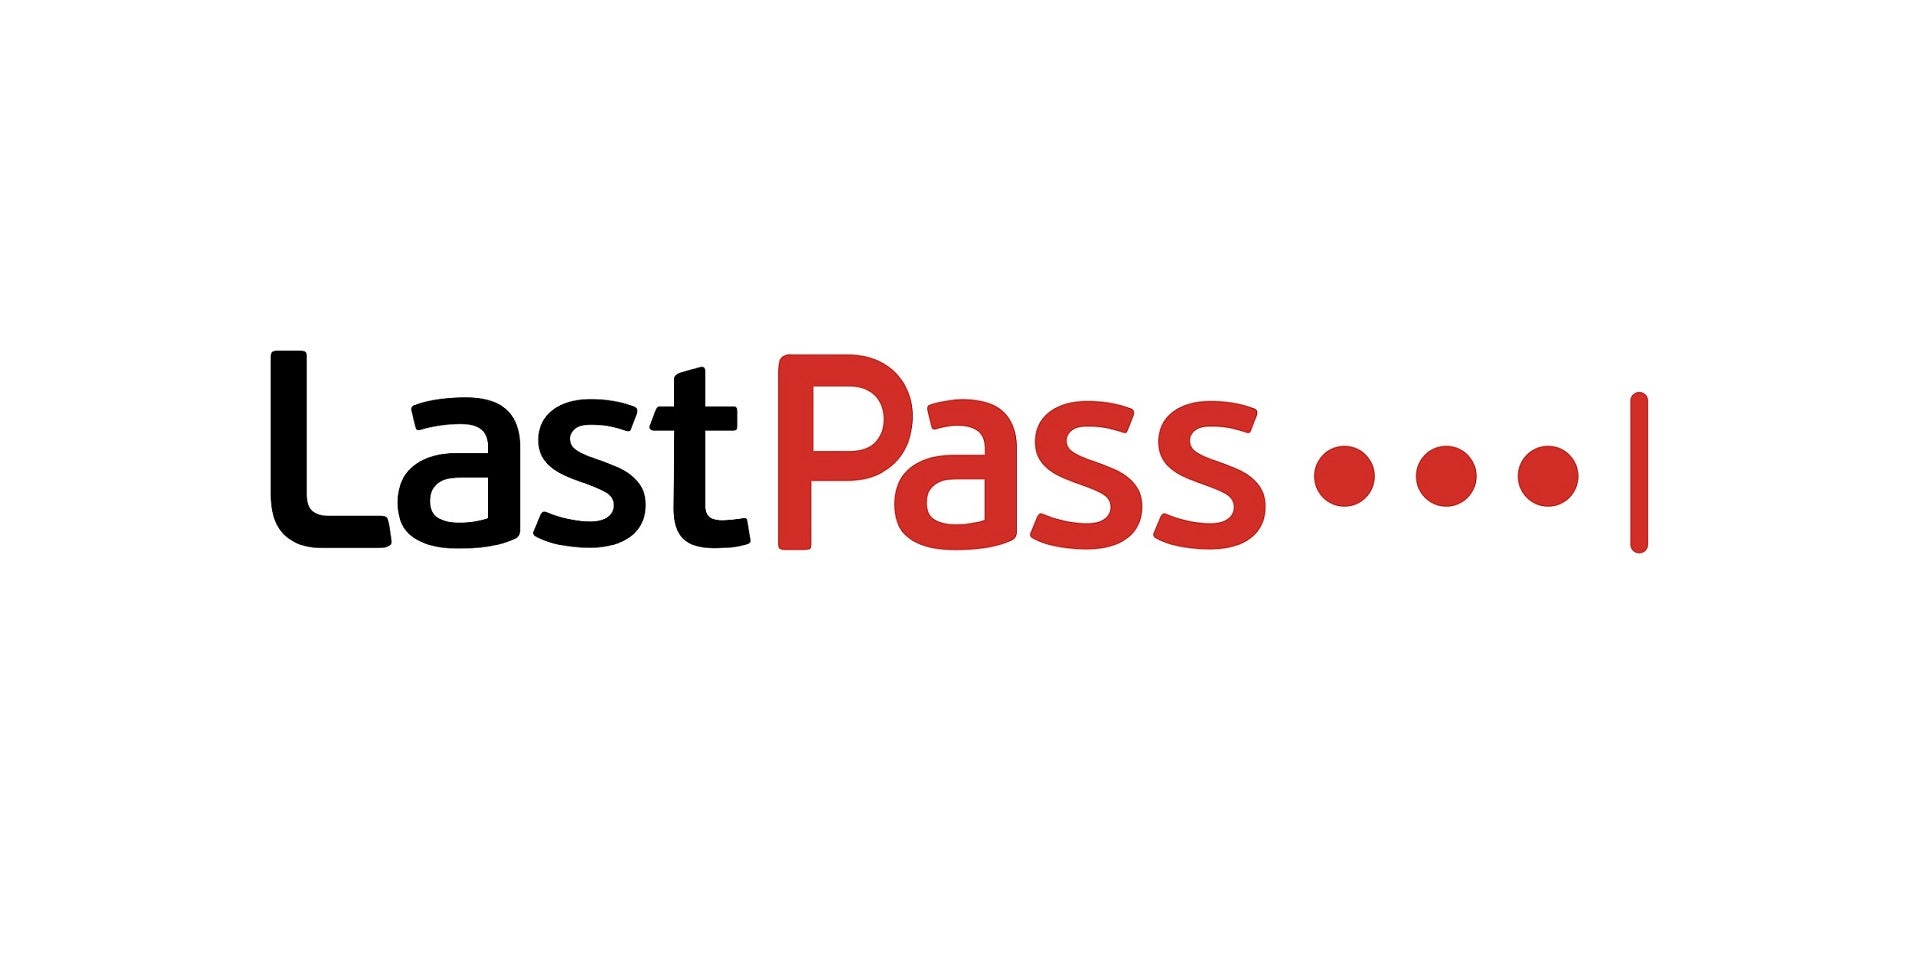 LastPass Adds Dark Web Monitoring to Security Dashboard | Tech.co